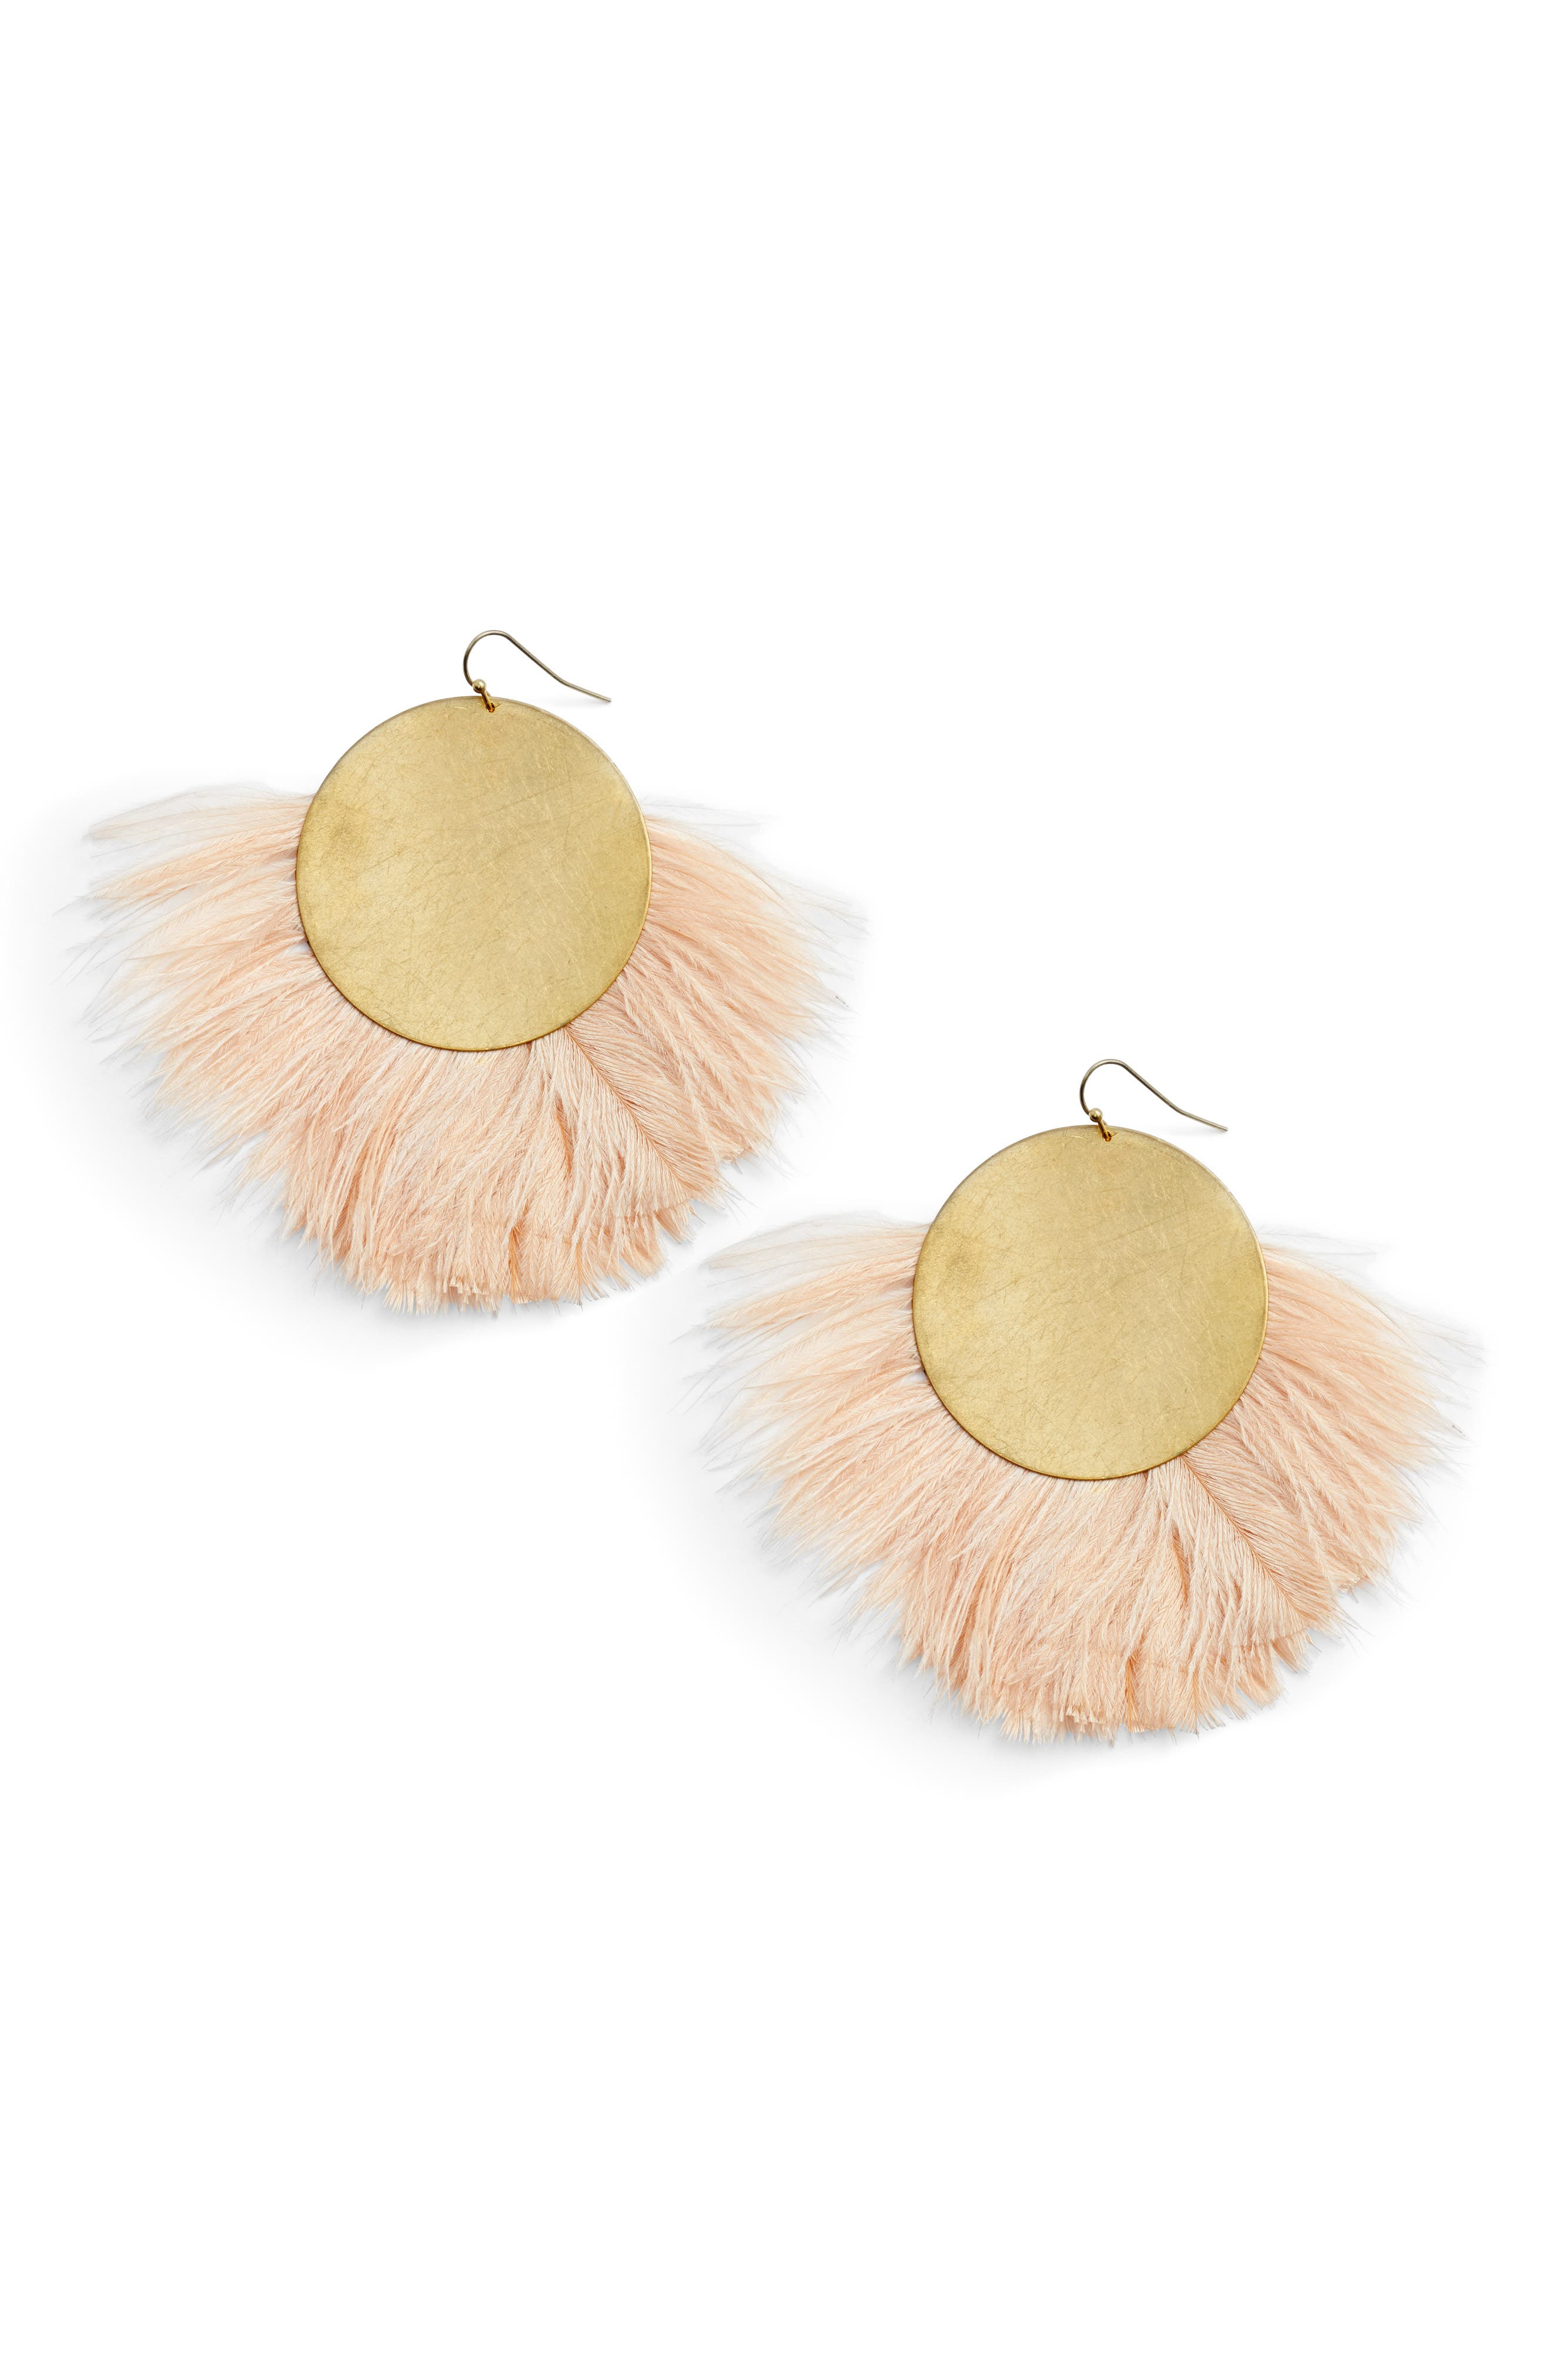 Feather Disc Earrings,                         Main,                         color, Blush/ Gold